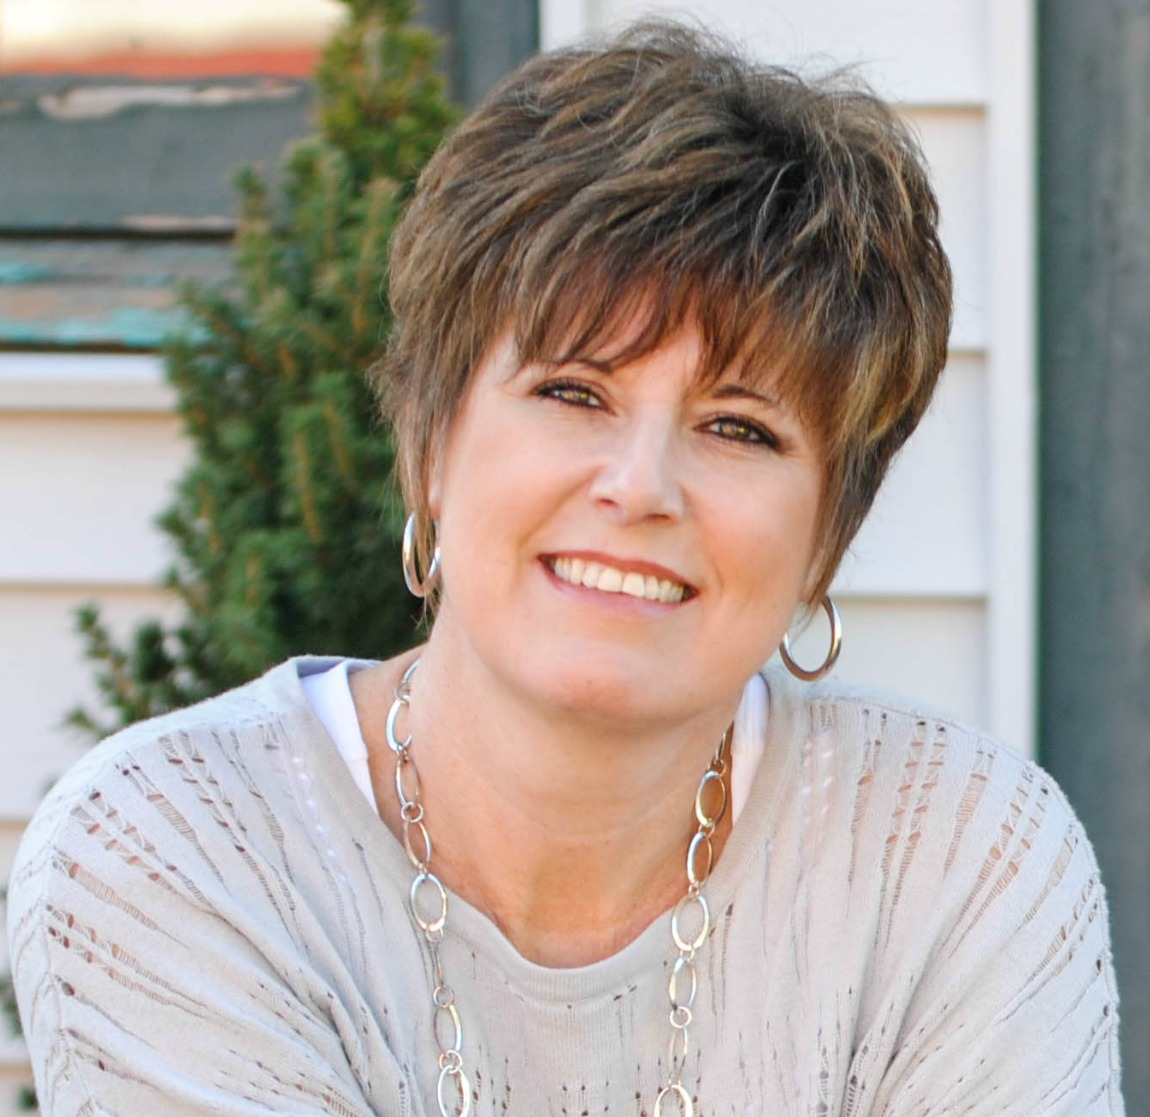 Author, Wendy Pope from Proverbs 31